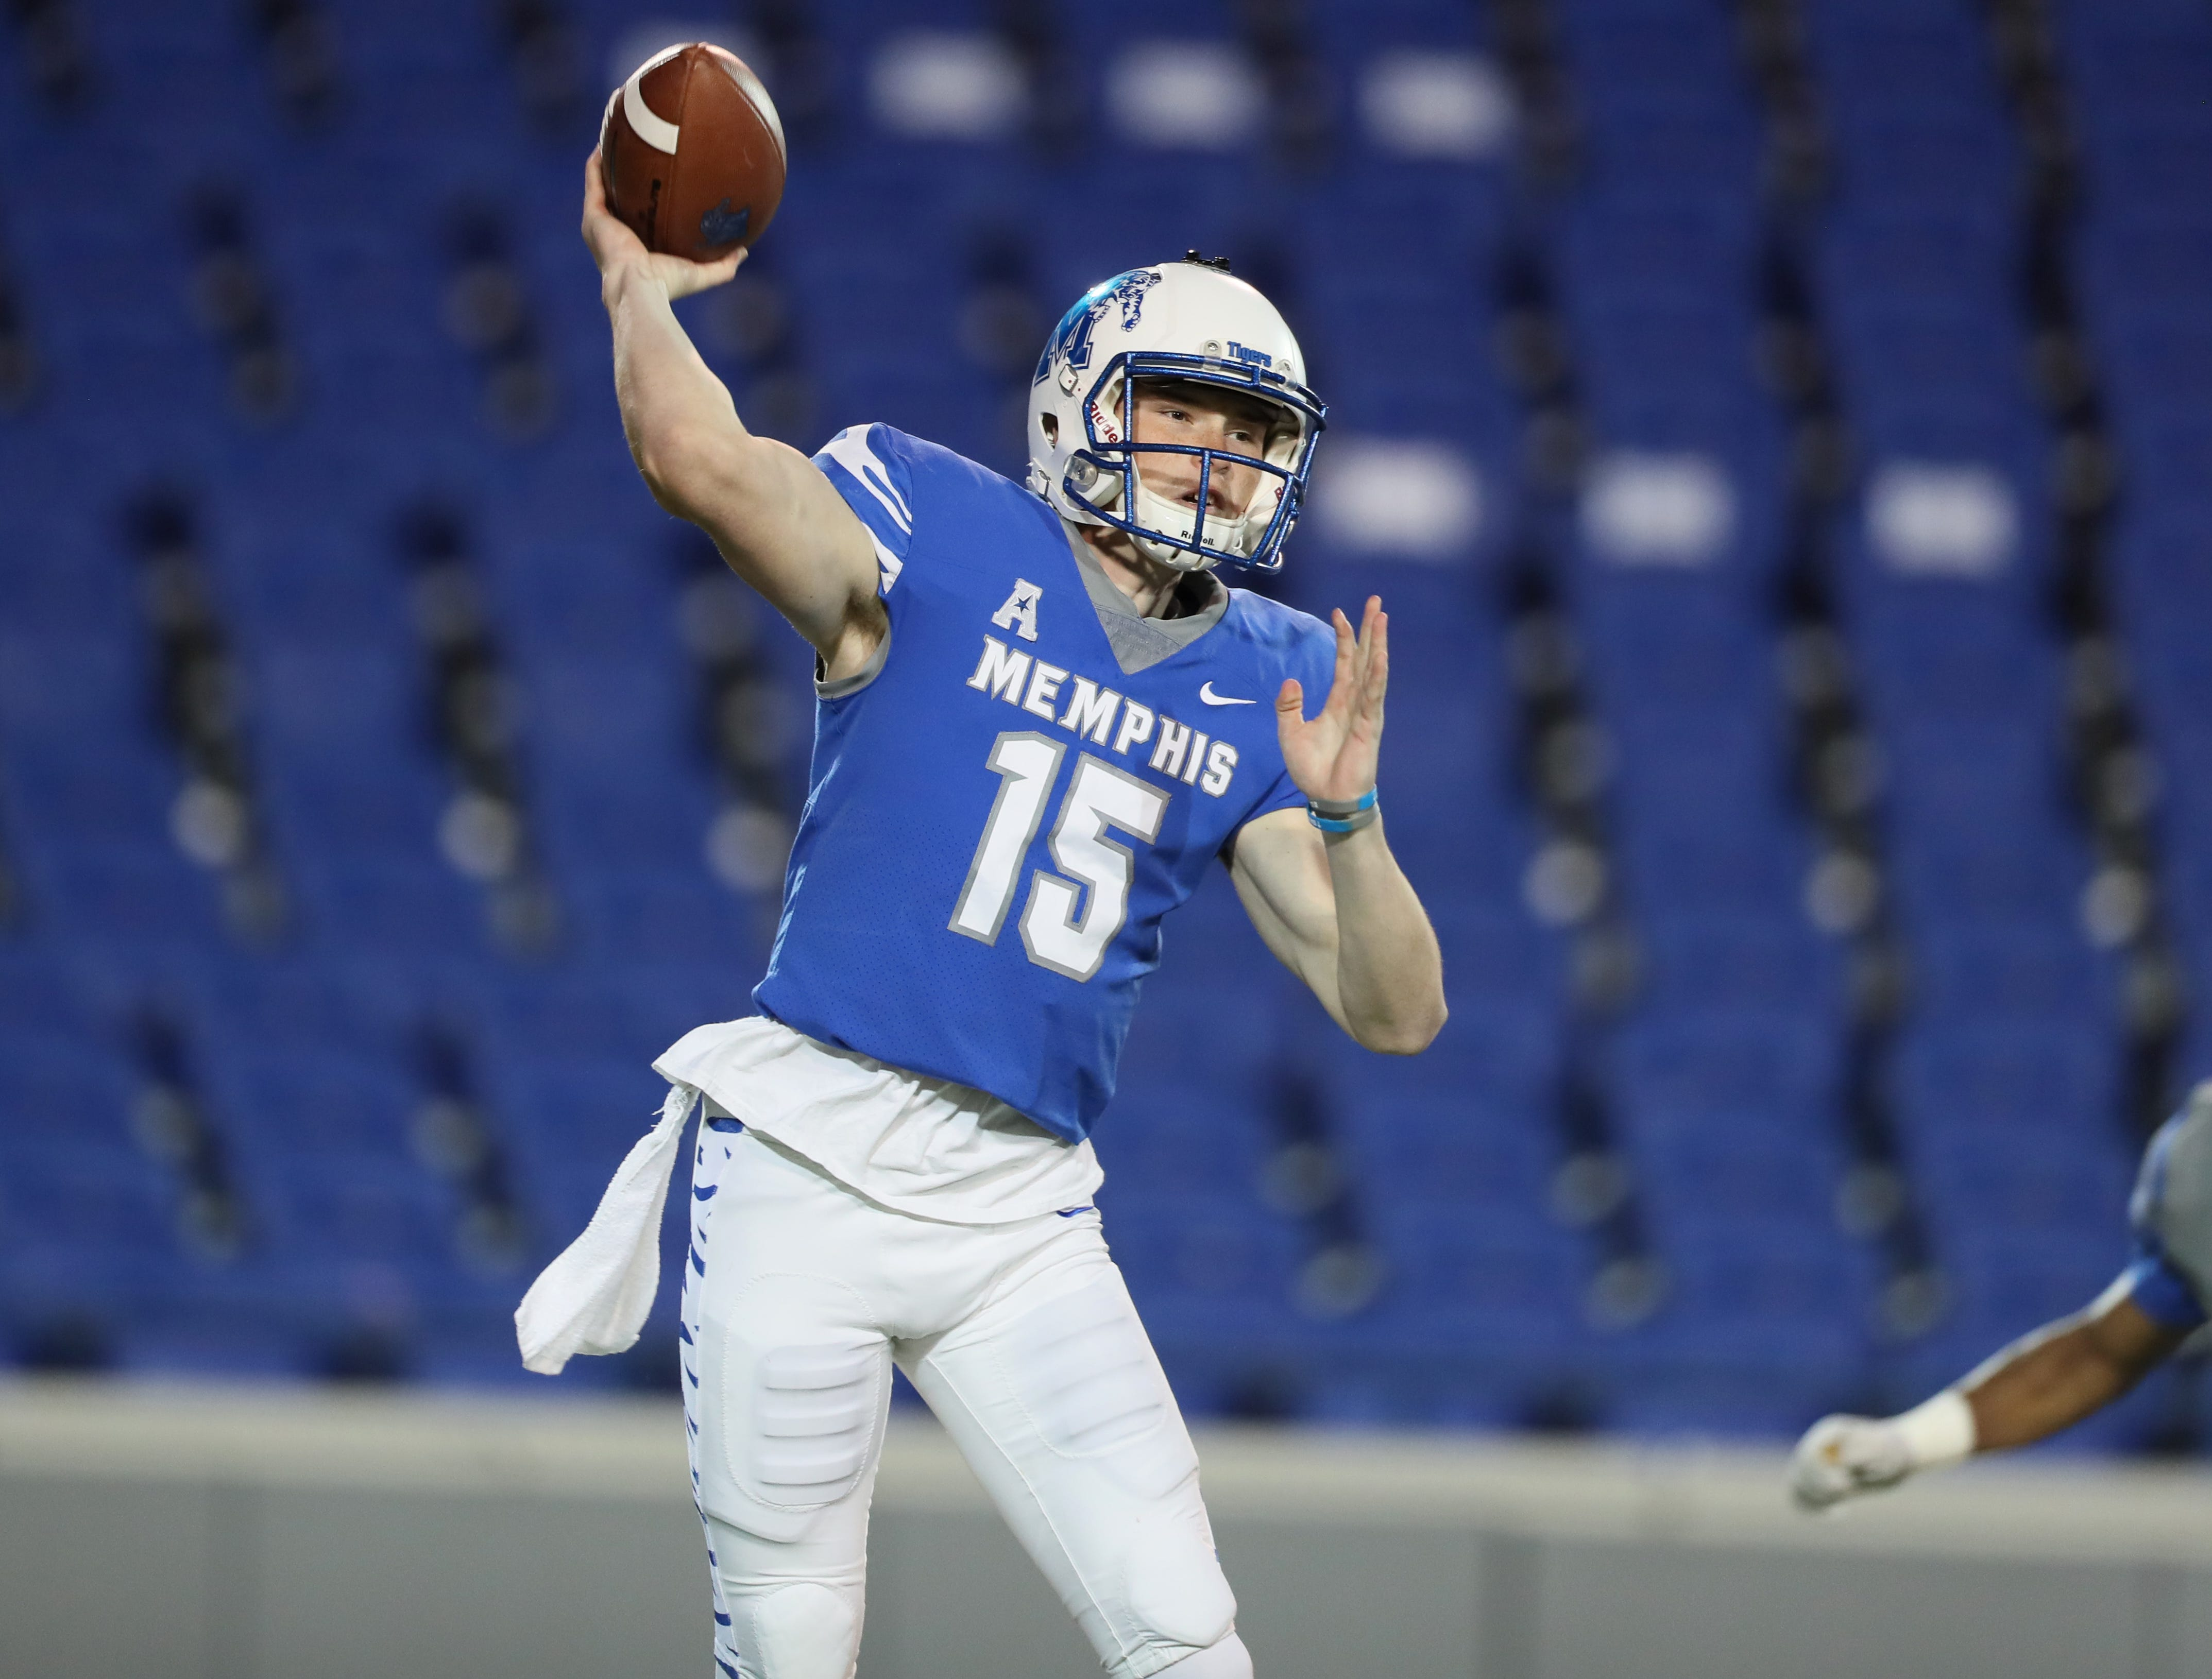 Memphis Tigers quarterback Quindell Johnson throws the ball during their Friday Night Stripes spring game at Liberty Bowl Memorial Stadium on Friday, April 12, 2019.